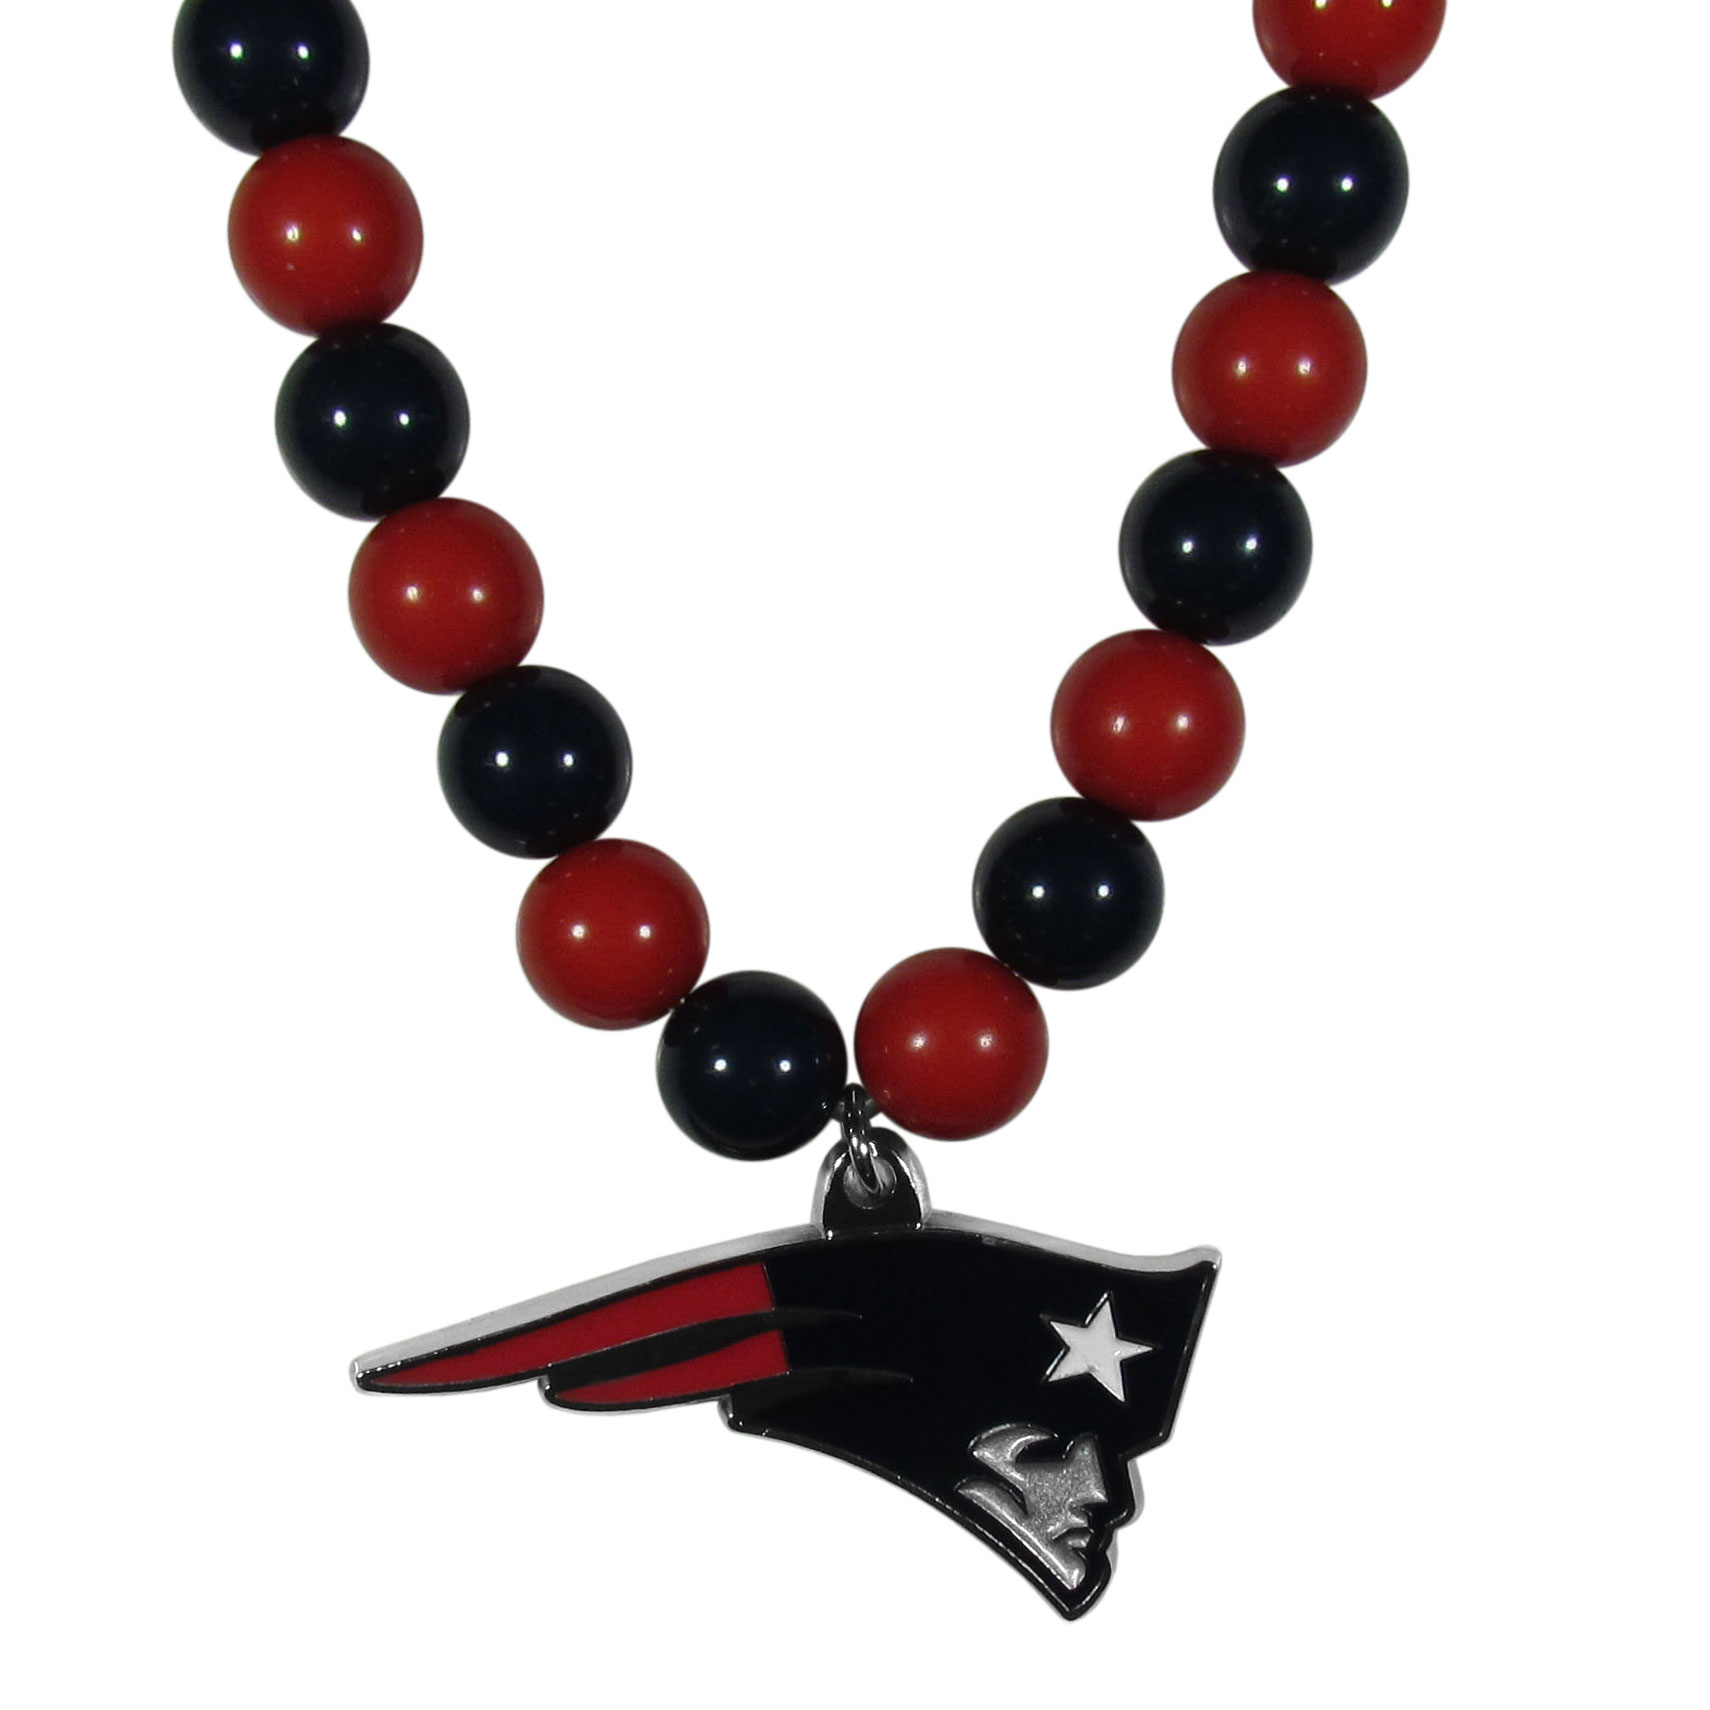 New England Patriots Fan Bead Necklace - Make a big statement with our fan bead necklaces! These brightly colored necklace have a 24 inch string of alternating colored beads with an extra large, high-polish New England Patriots pendant.